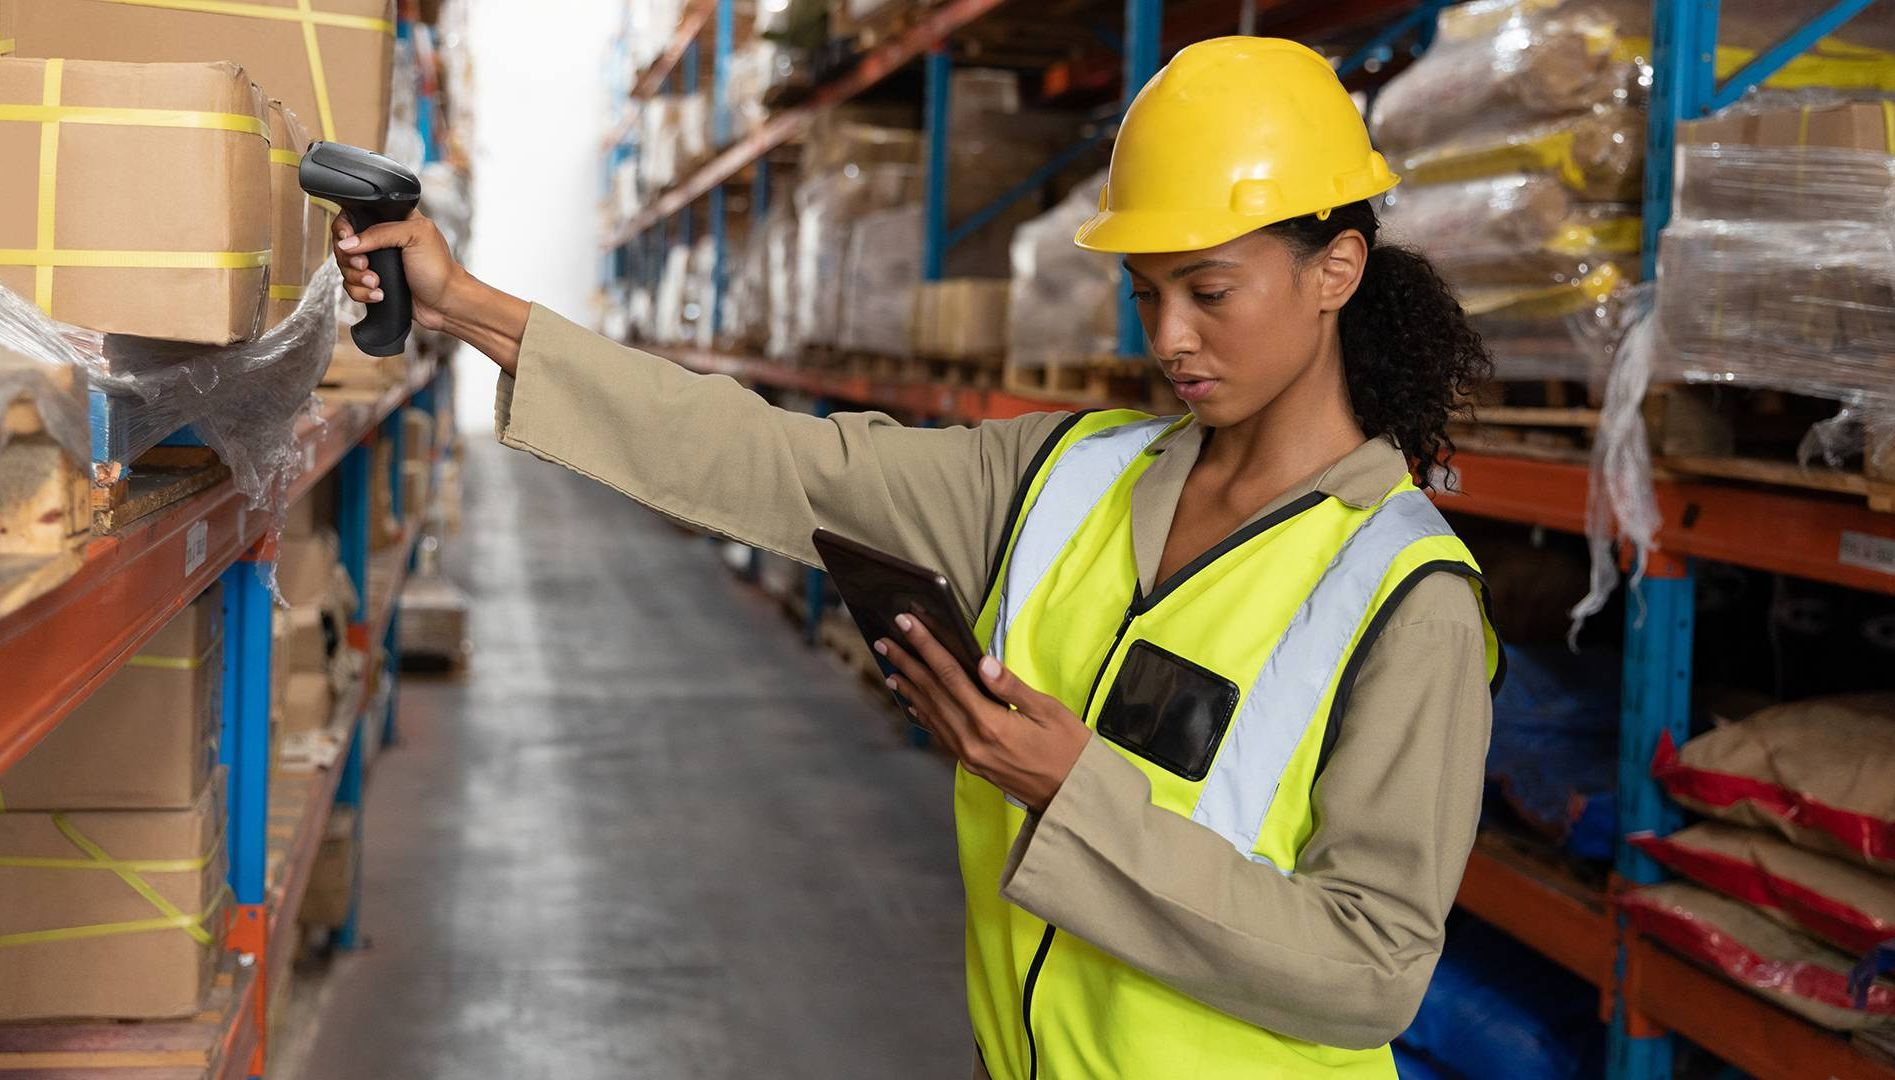 Female worker scanning package with barcode scanner while using digital tablet in warehouse. Rewire PBS Our Future Rights at Work